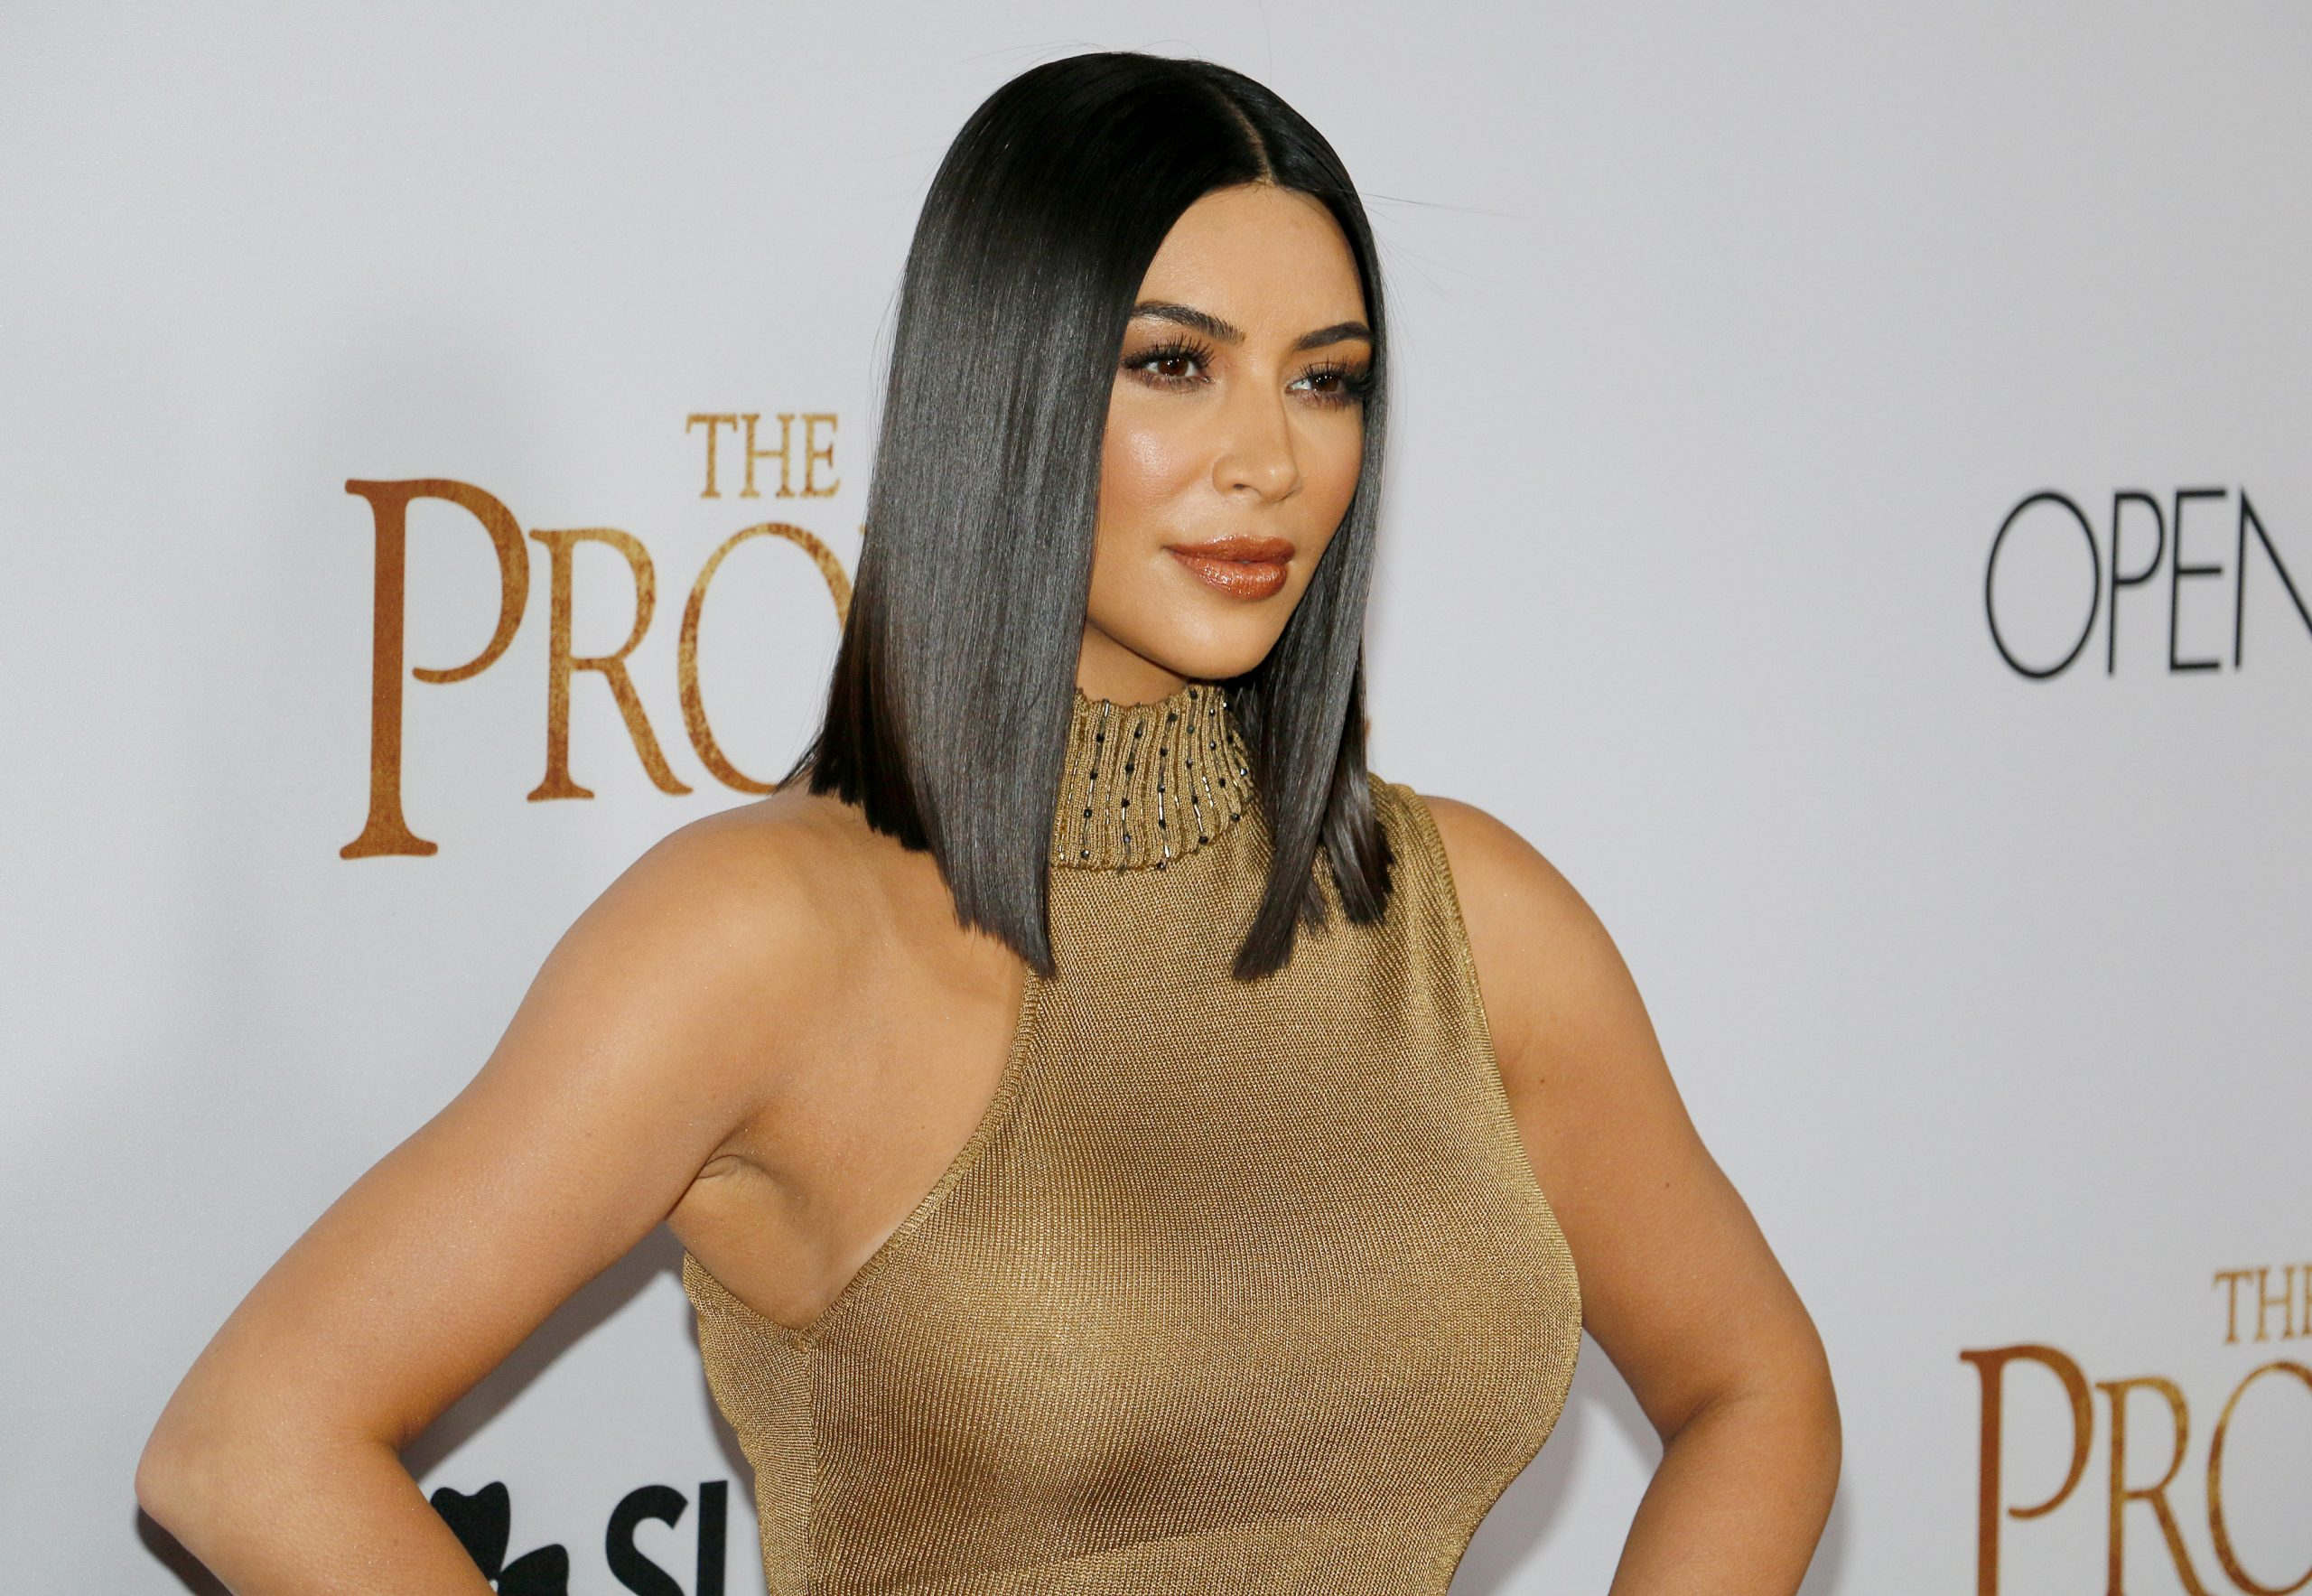 Kim Kardashian poses at a red carpet event. She has sleek black hair that sits on her shoulders and wears a high-neck gold, sleeveless dress.